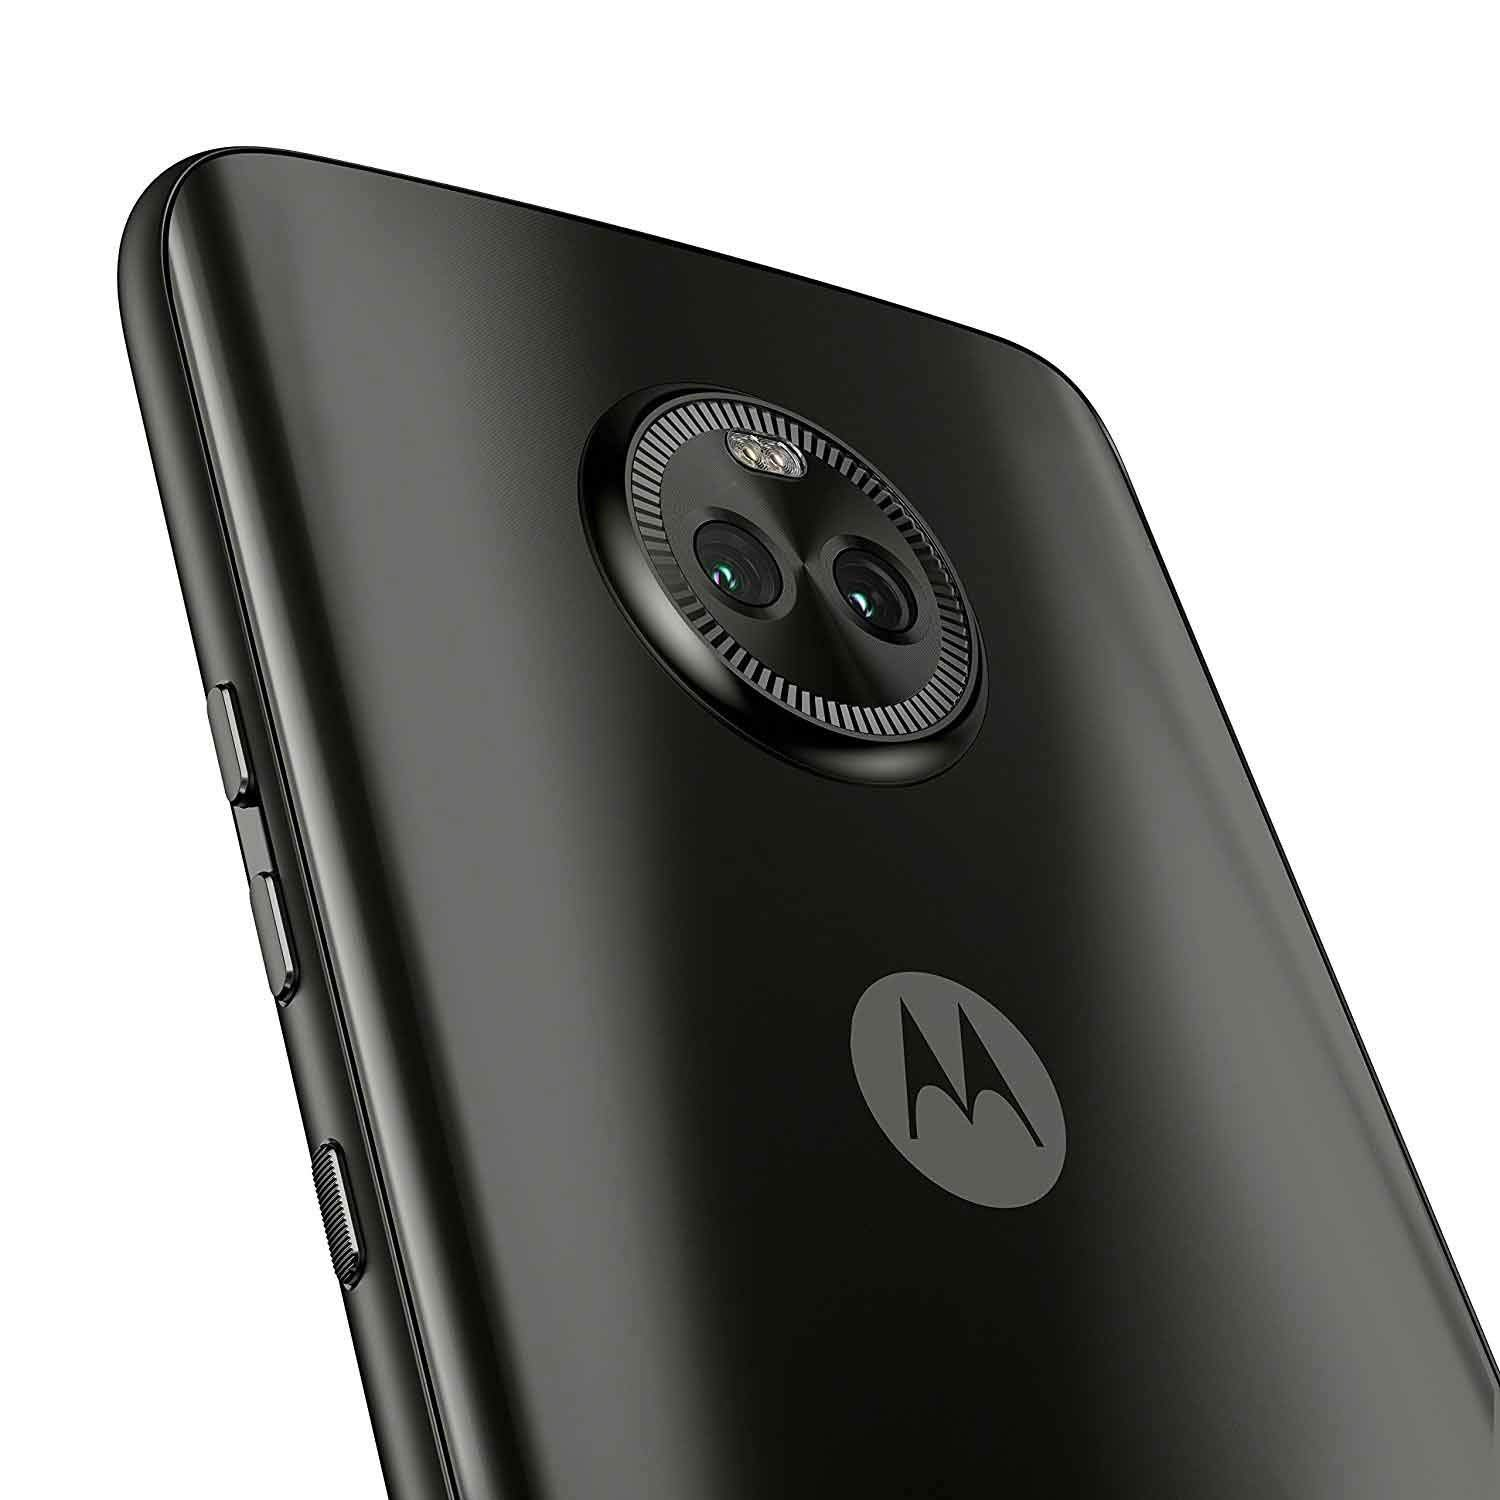 Moto X (4th Generation) - with Amazon Alexa hands-free – 32 GB - Unlocked – Super Black - Prime Exclusive by Motorola (Image #5)